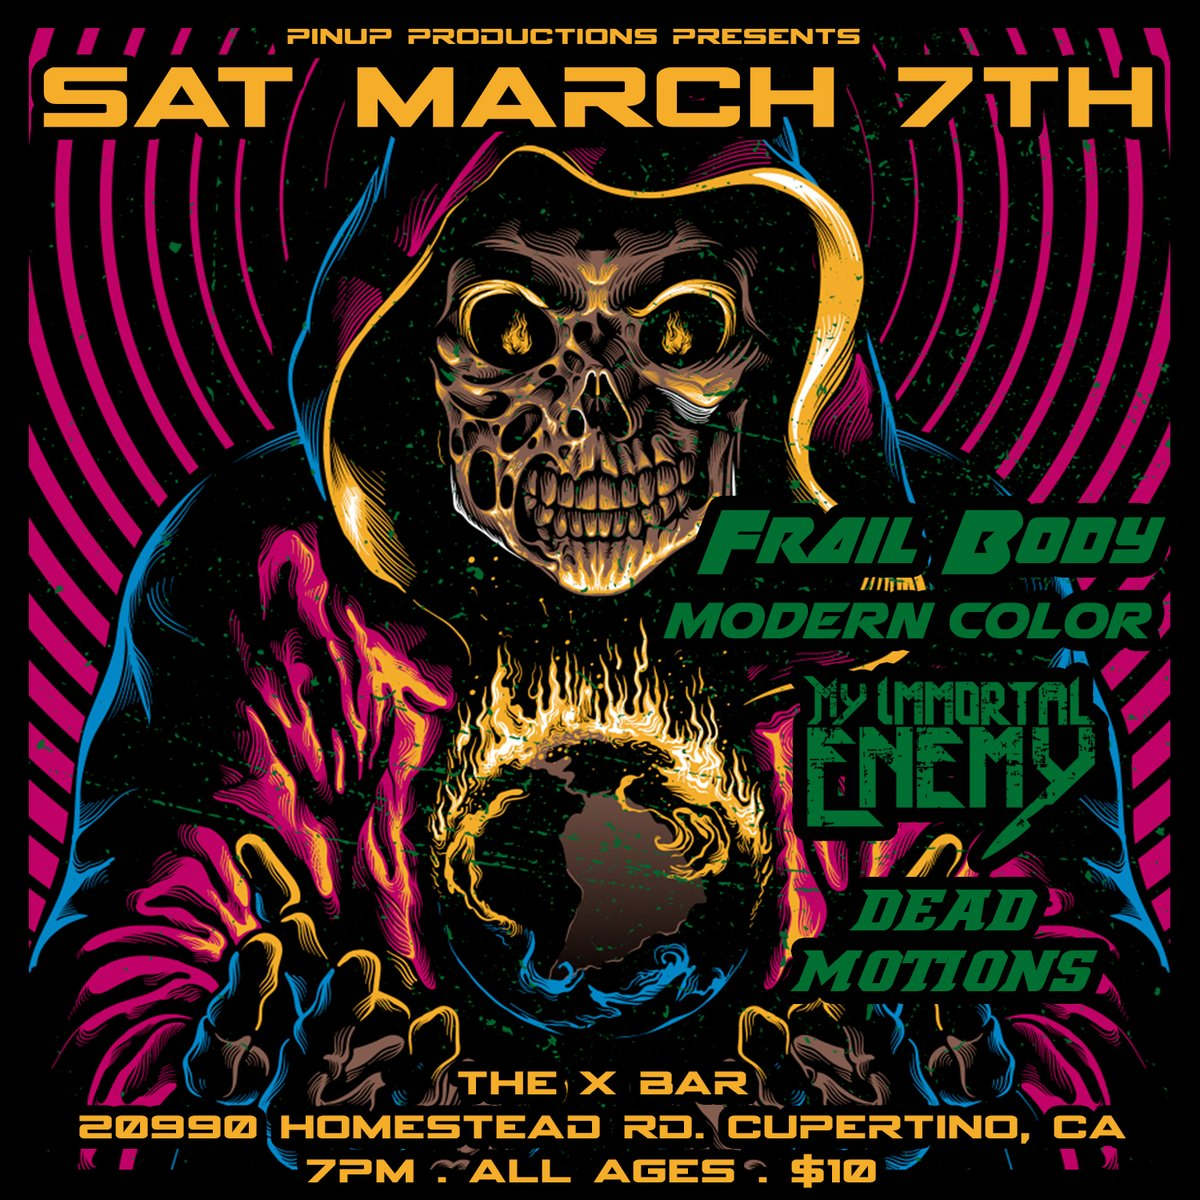 Our first show of 2020. San Jose, California. All Ages  @PinUpPresents https://t.co/lVZB3AaNM7